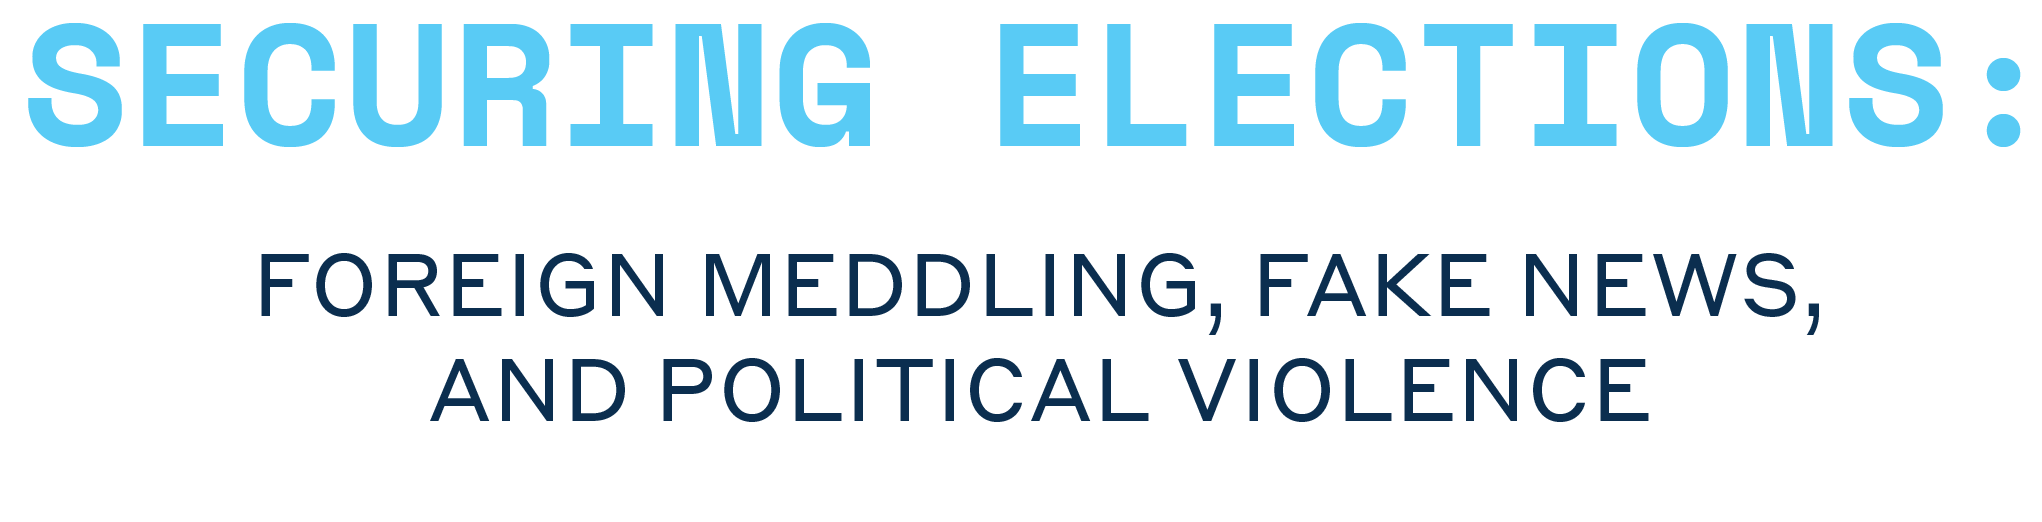 Securing Elections: Foreign Meddling, Fake News, and Political Violence